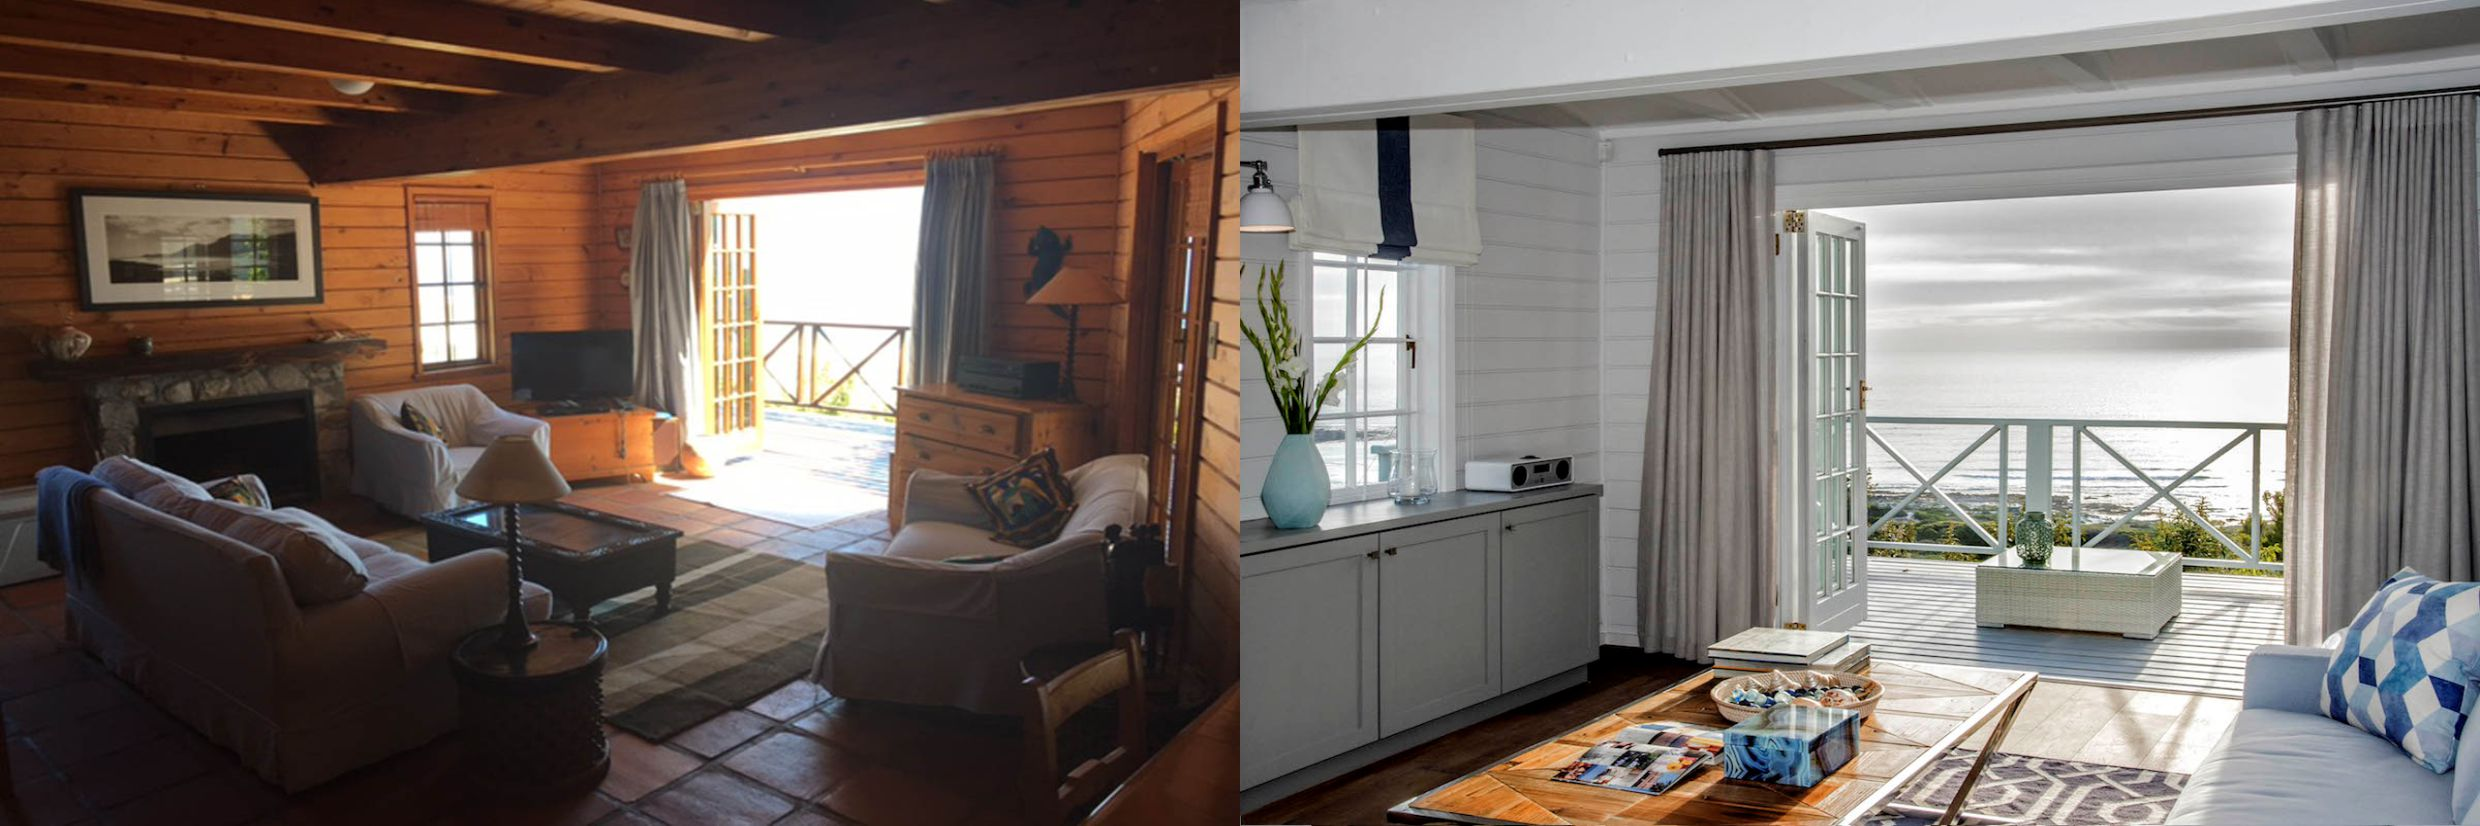 Before And After Jade And Ginja Interior Design And Decor